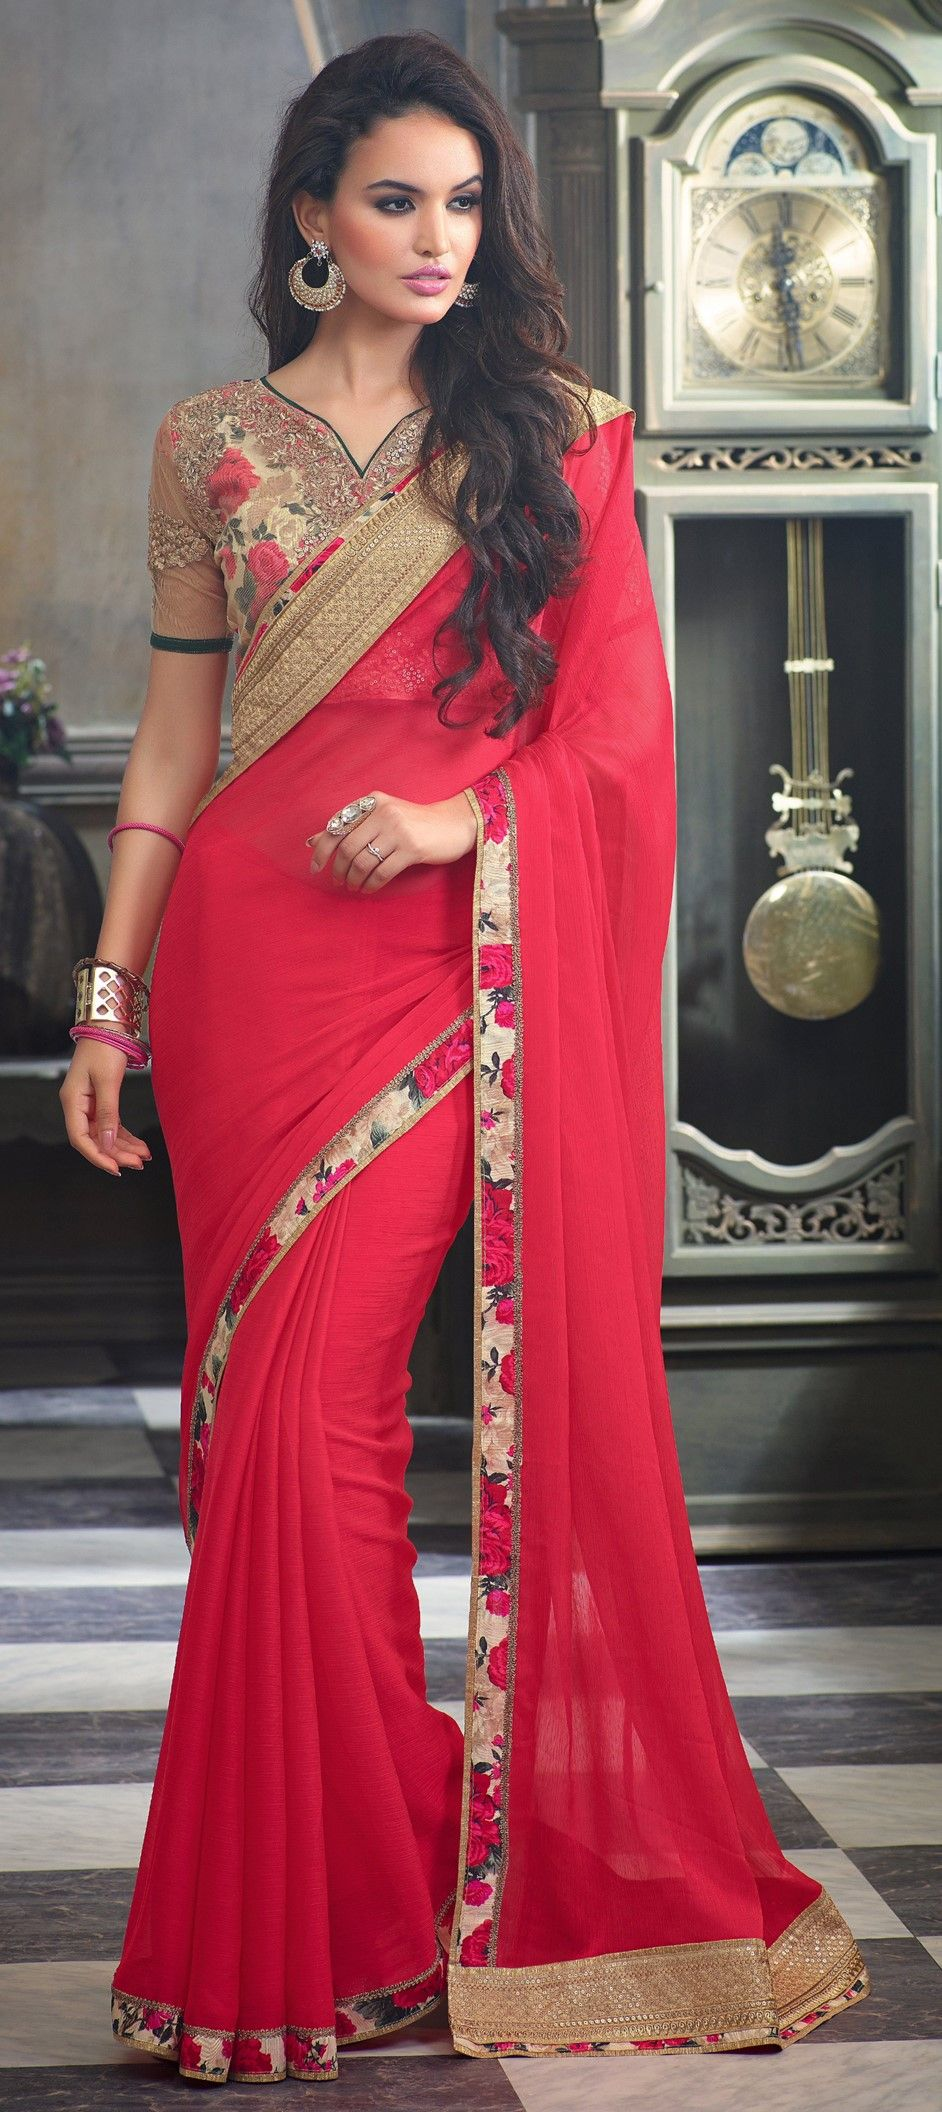 effdc8ecadd58c 182513: Red and Maroon color family Embroidered Sarees, Party Wear Sarees  with matching unstitched blouse.